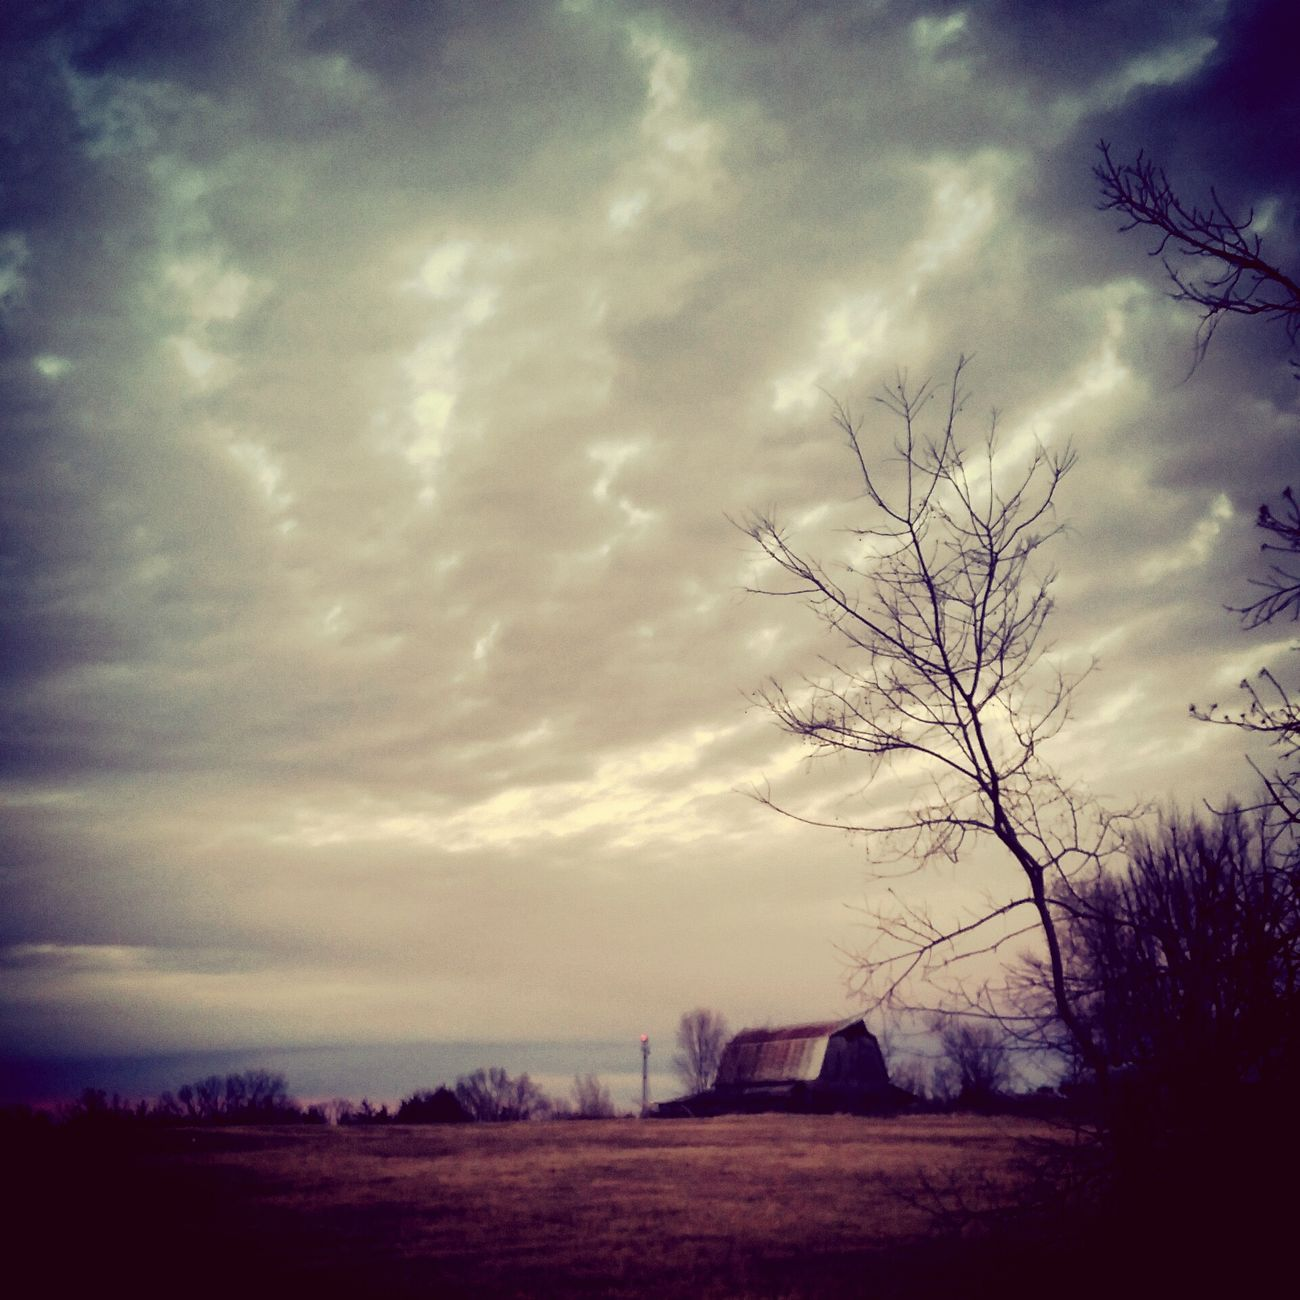 Country Gravel Roads Barns Evening Sky Clouds Beautiful Picture